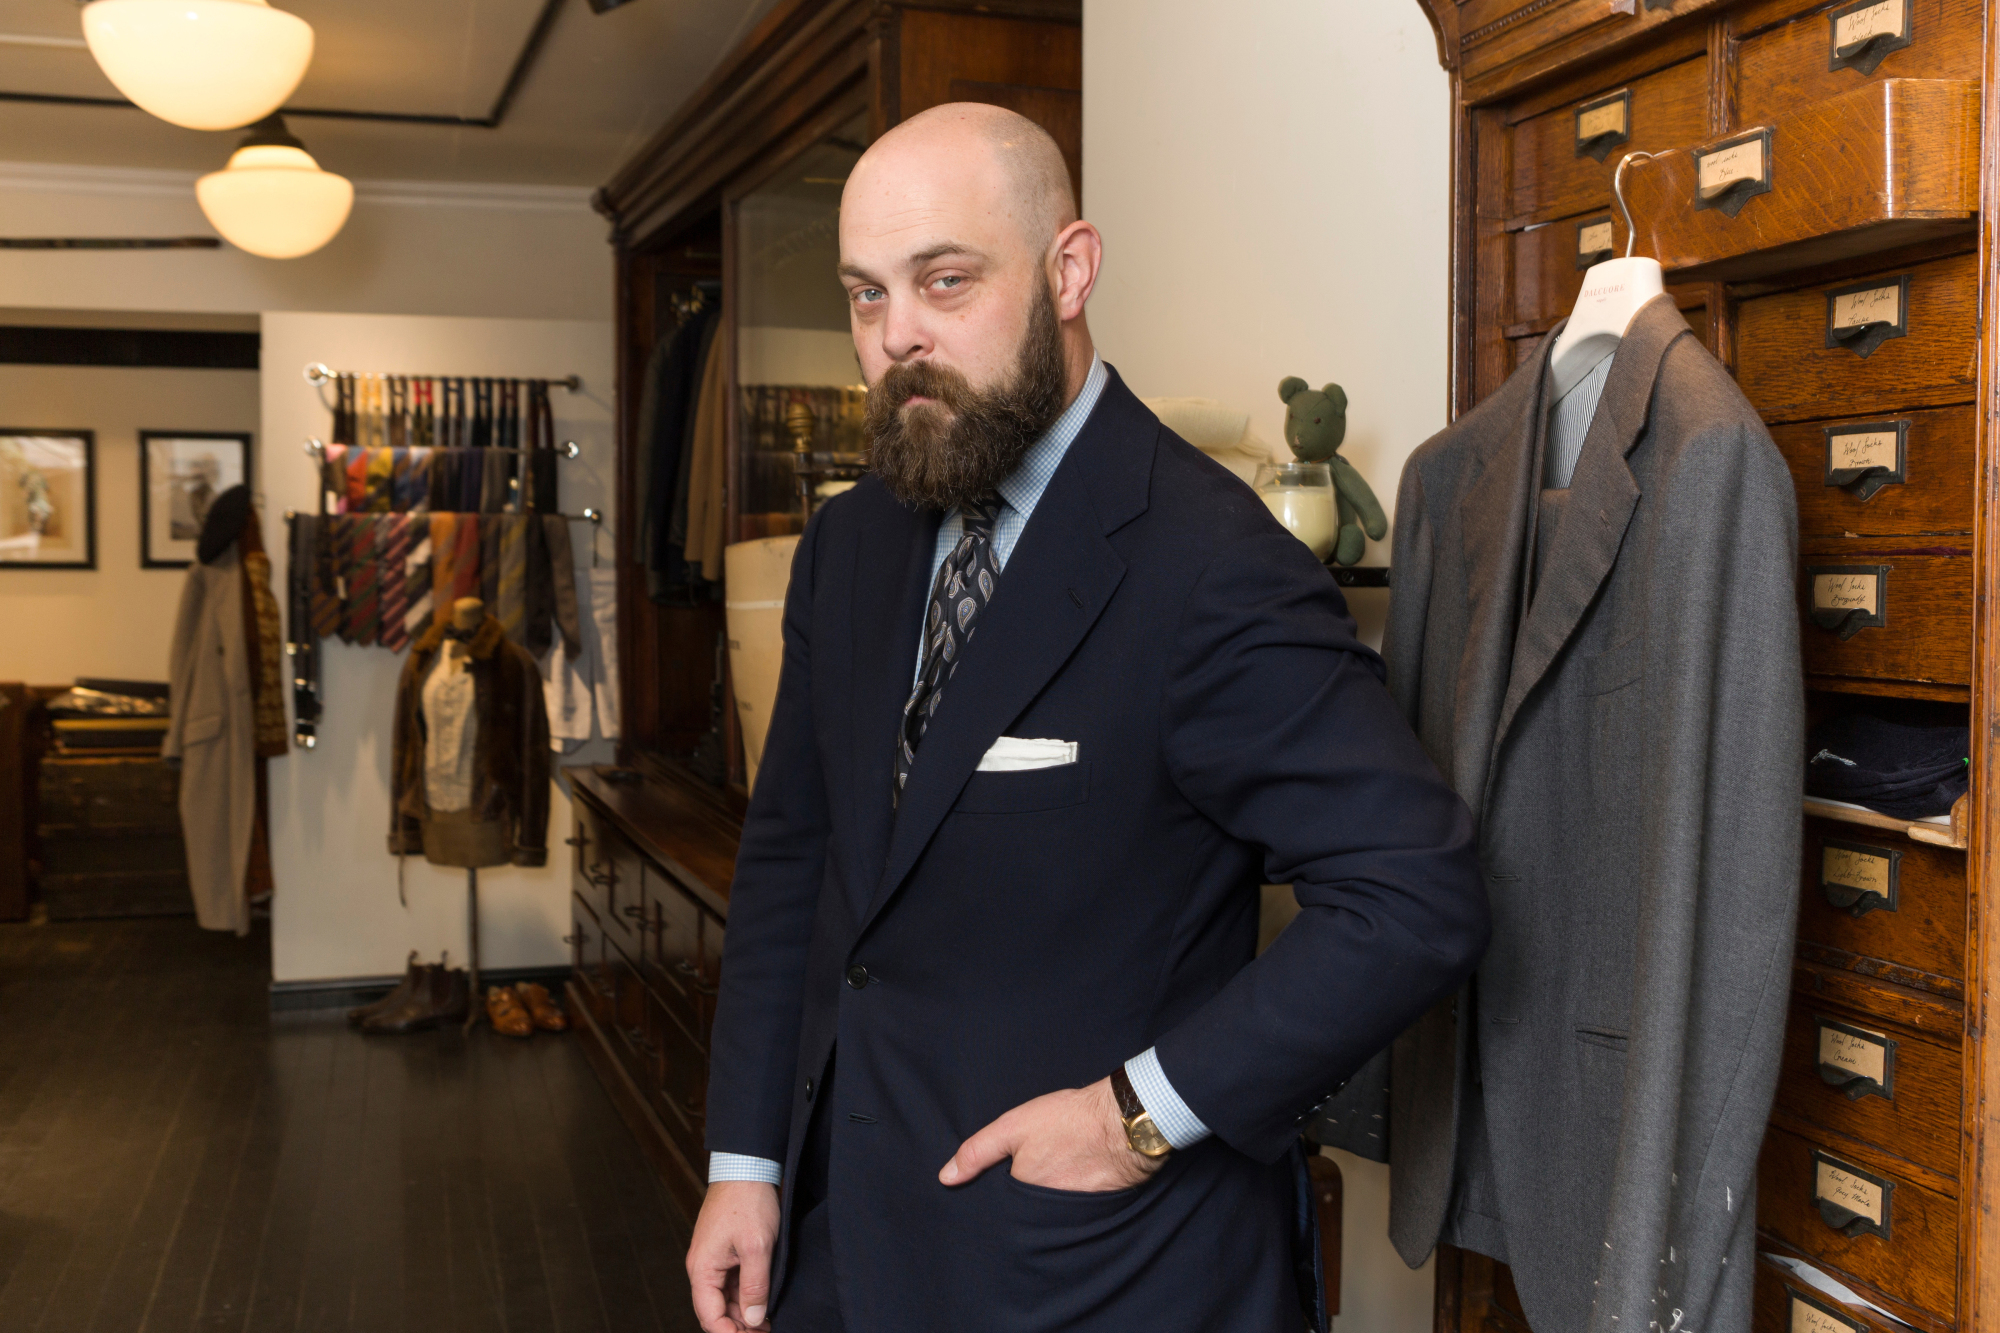 Style and substance: 'If only men who could would plan their wardrobes, and work with tailors, instead of asking their girlfriends what they should wear,' the world would be a better place, says Ethan Newton, proprietor of Bryceland's Tailors in the Jingumae district of Tokyo's Shibuya Ward. | CHRISTINA SJOGREN